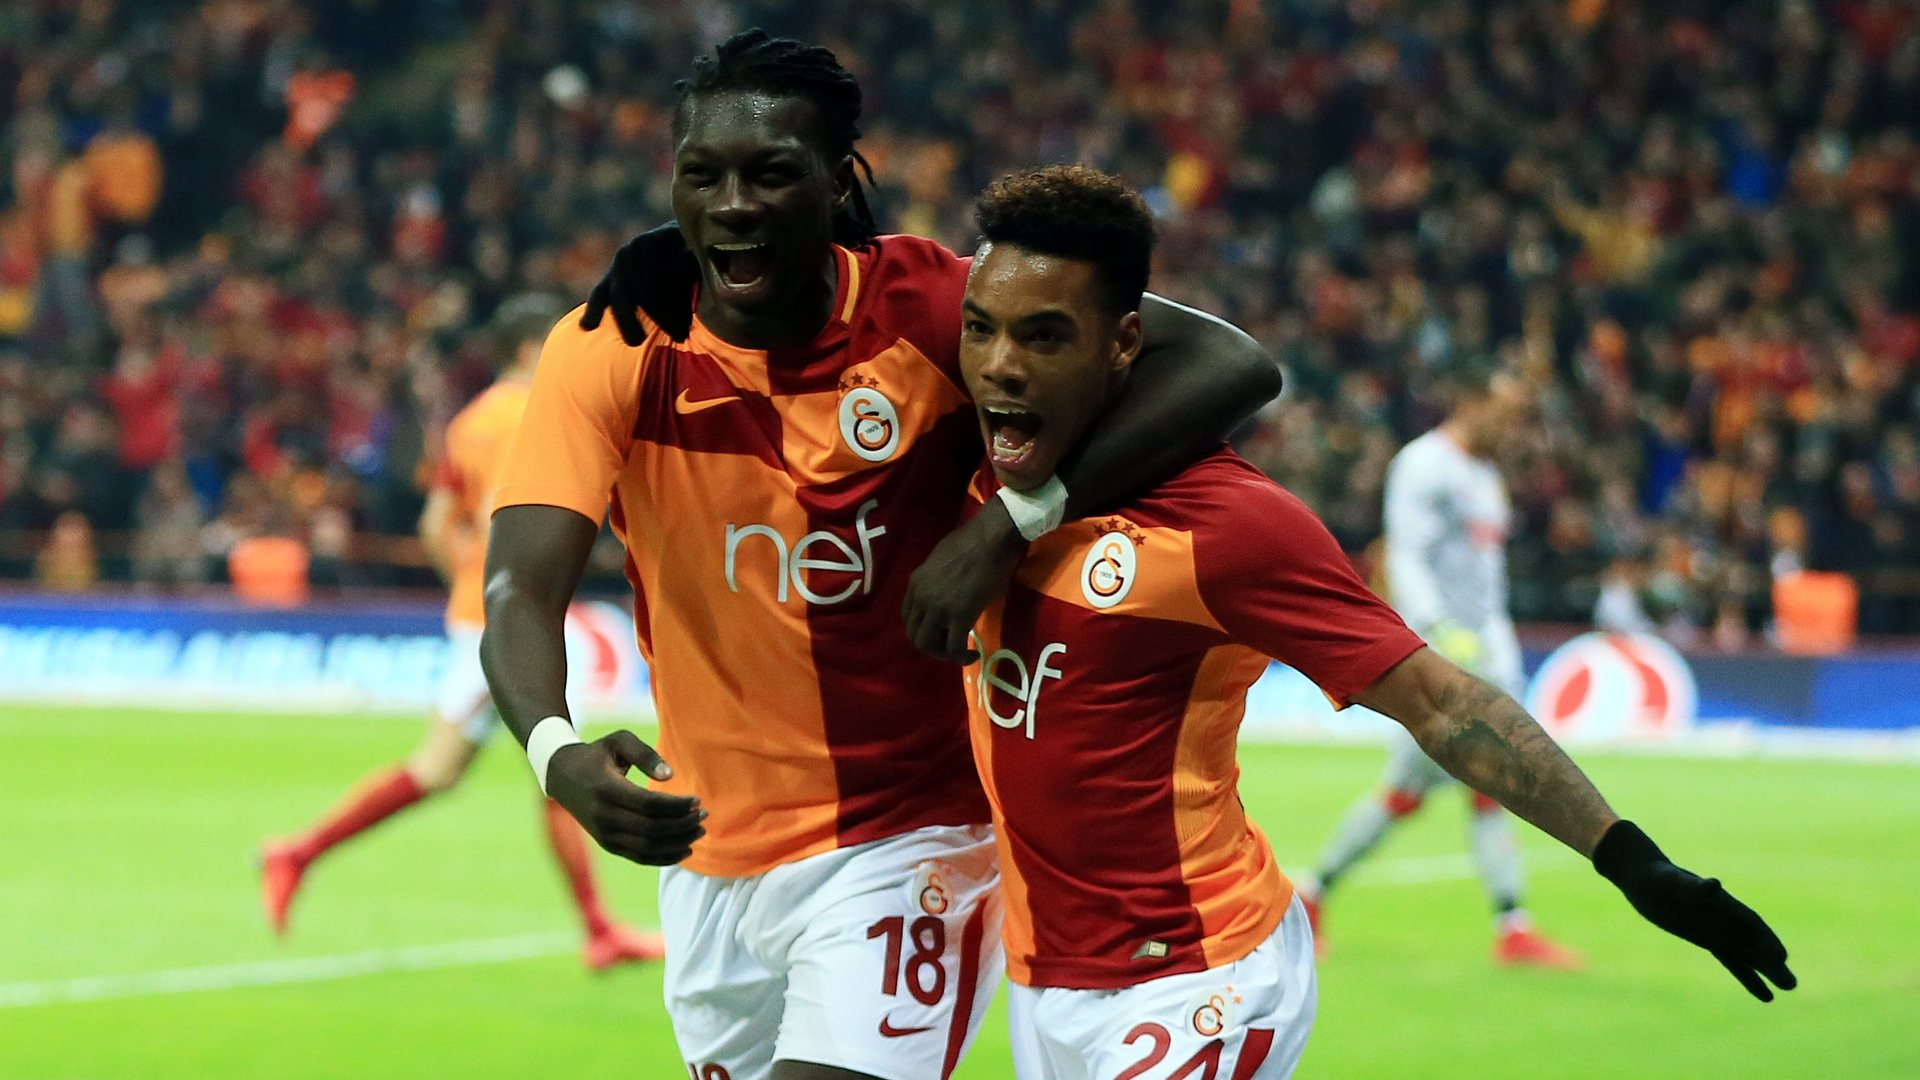 Bafetimbi Gomis Garry Rodrigues Galatasaray